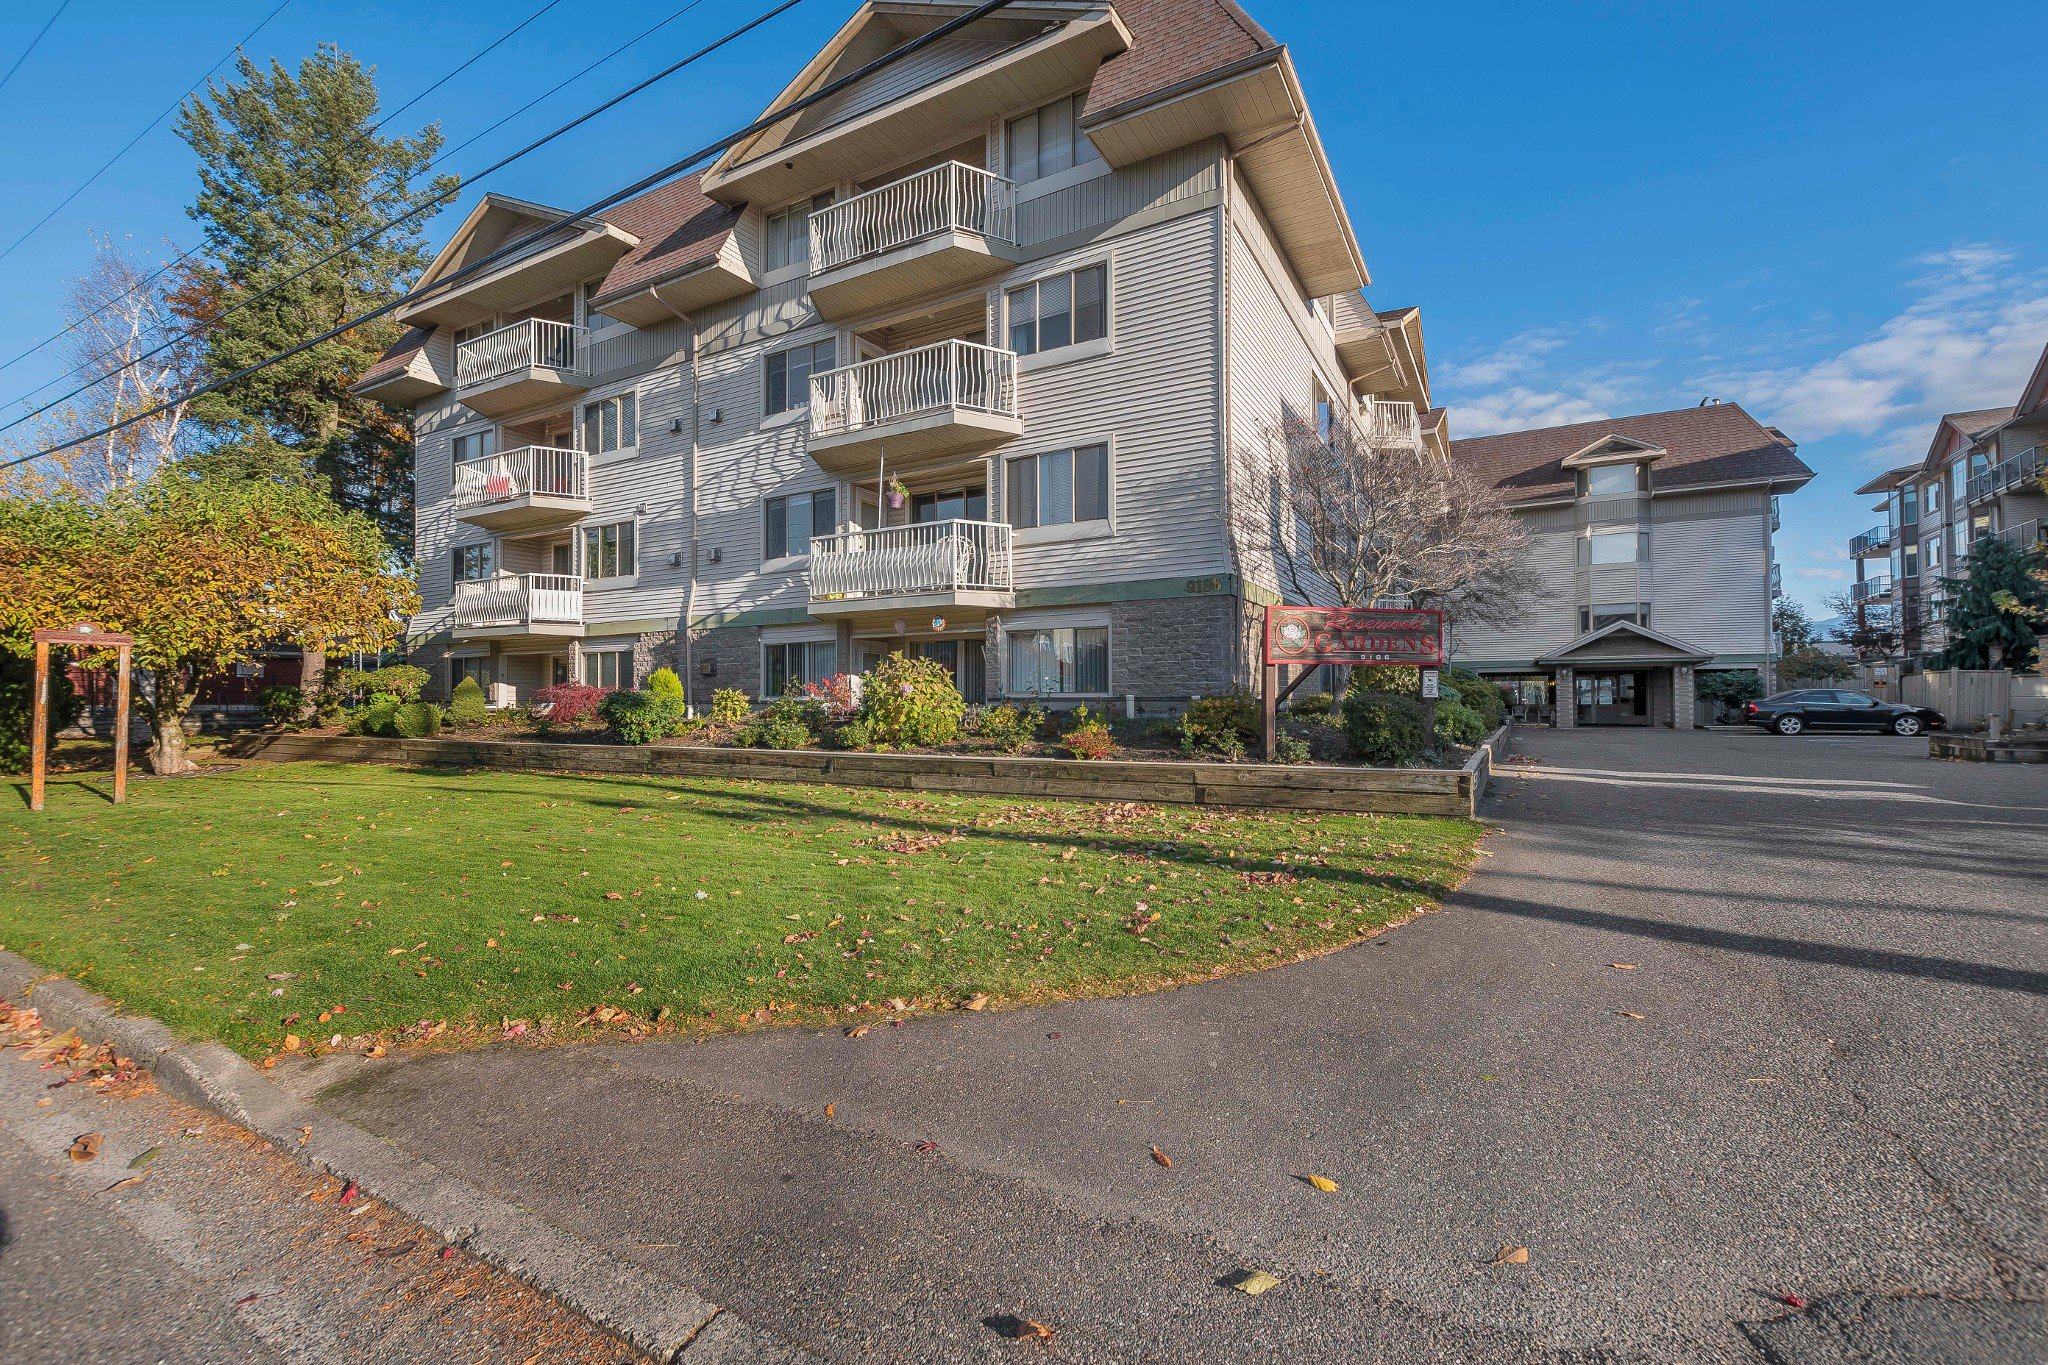 Photo 1: Photos: 305 9186 Edward Street in Chilliwack: Condo for sale : MLS®# R2218862